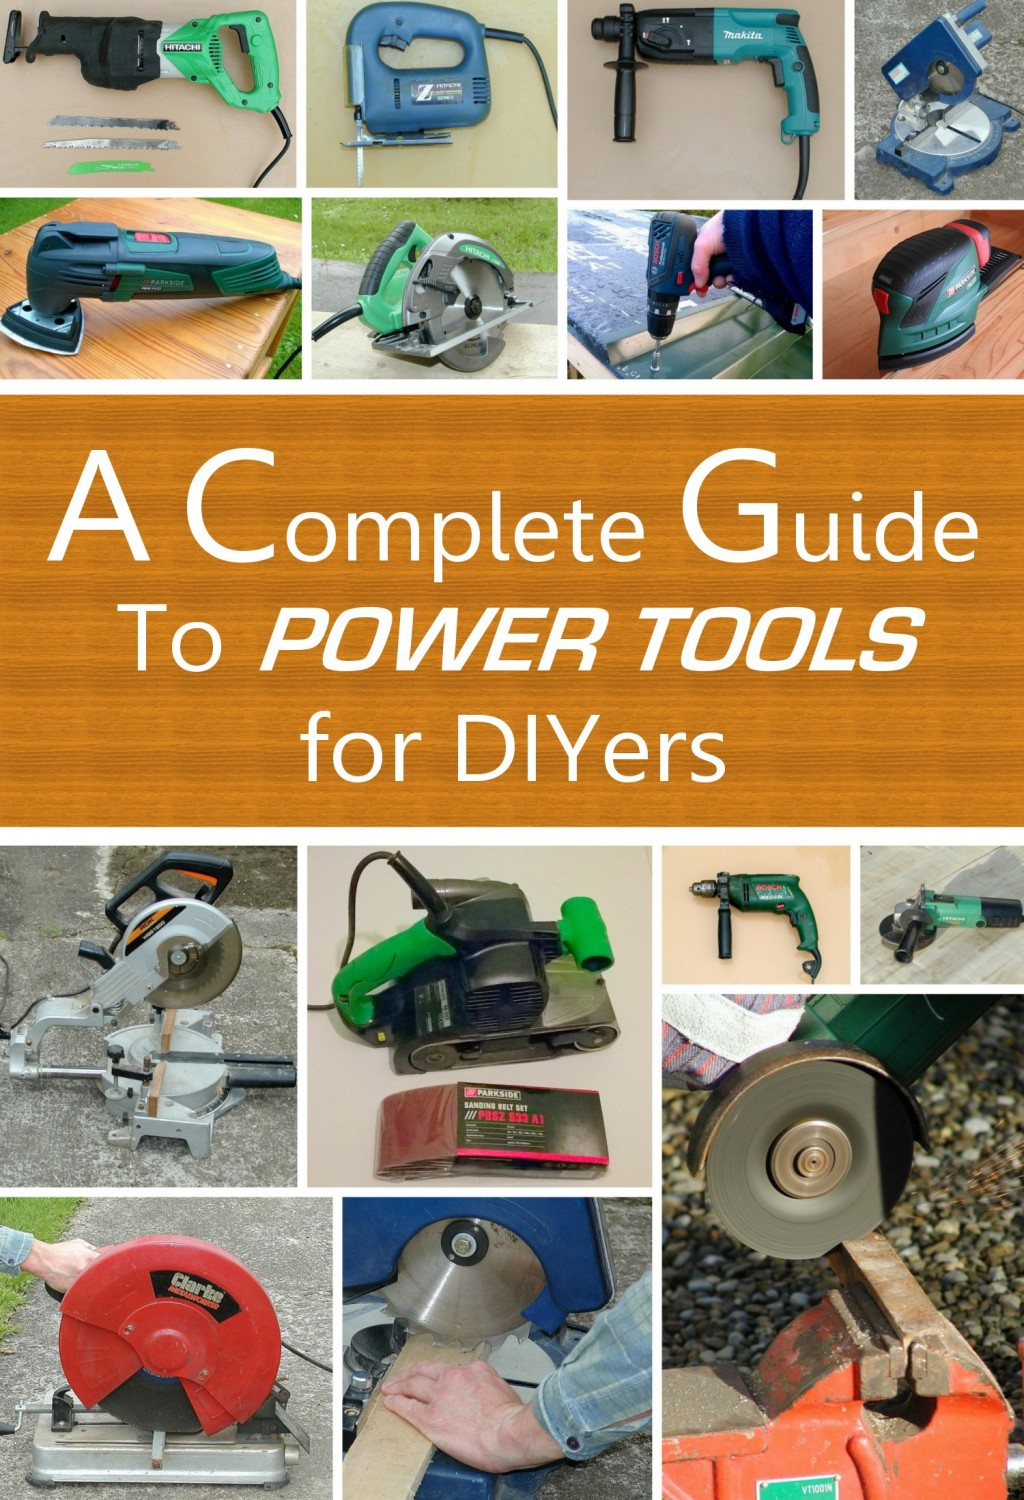 A Complete Beginners Guide To Power Tools Drills Sanders Electric Drill Motor Wiring Diagram Grinders Multitools Dremels Saws Dengarden